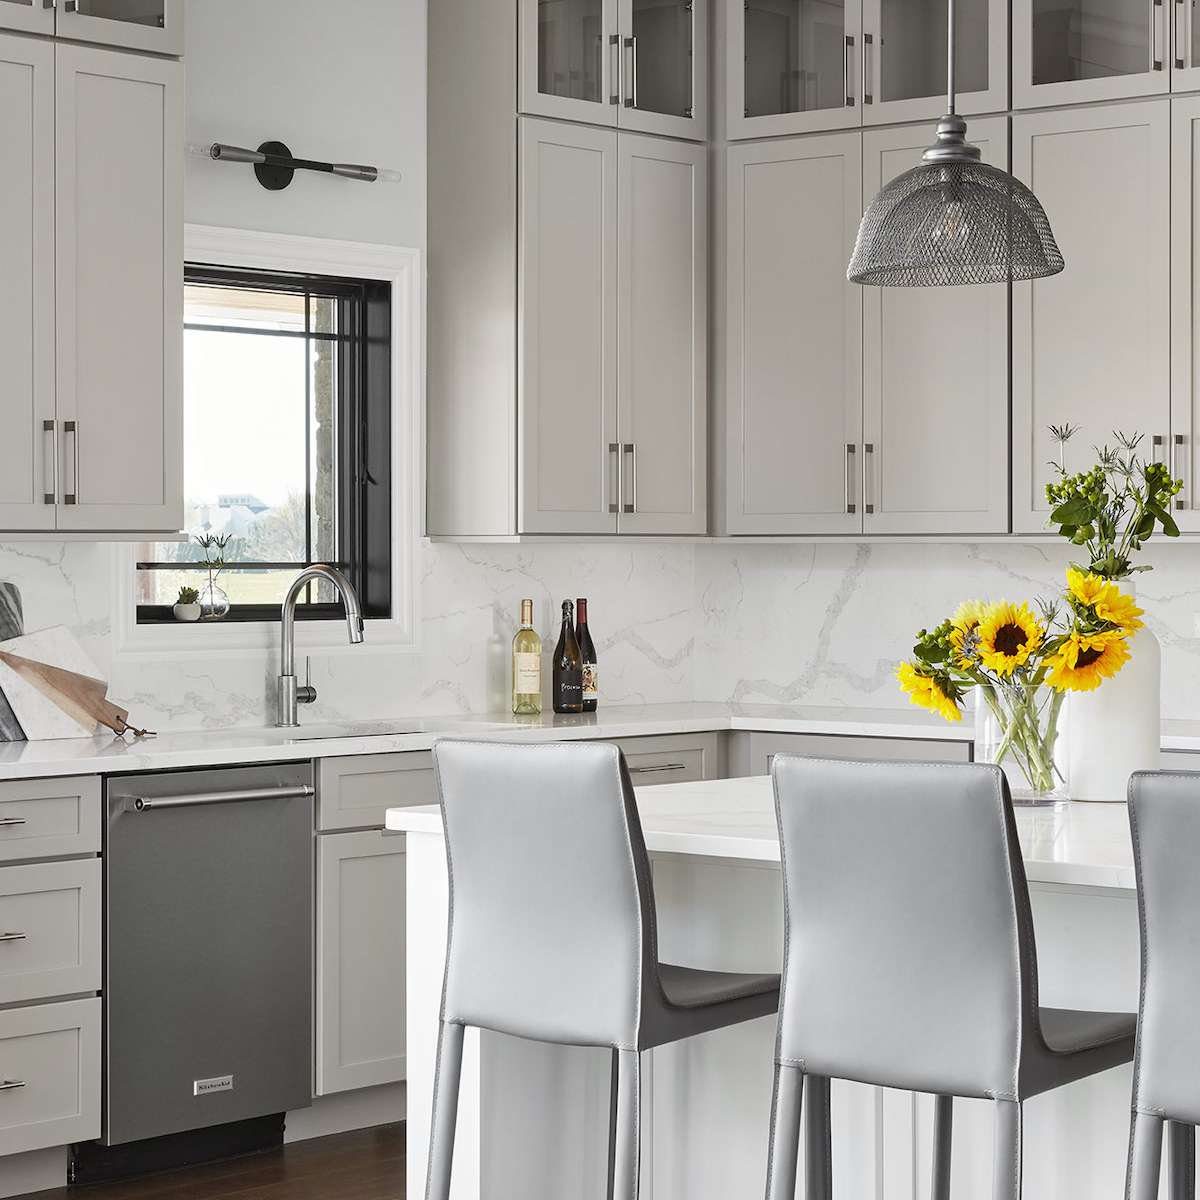 A kitchen with gray kitchen cabinets, gray barstools, and silver appliances